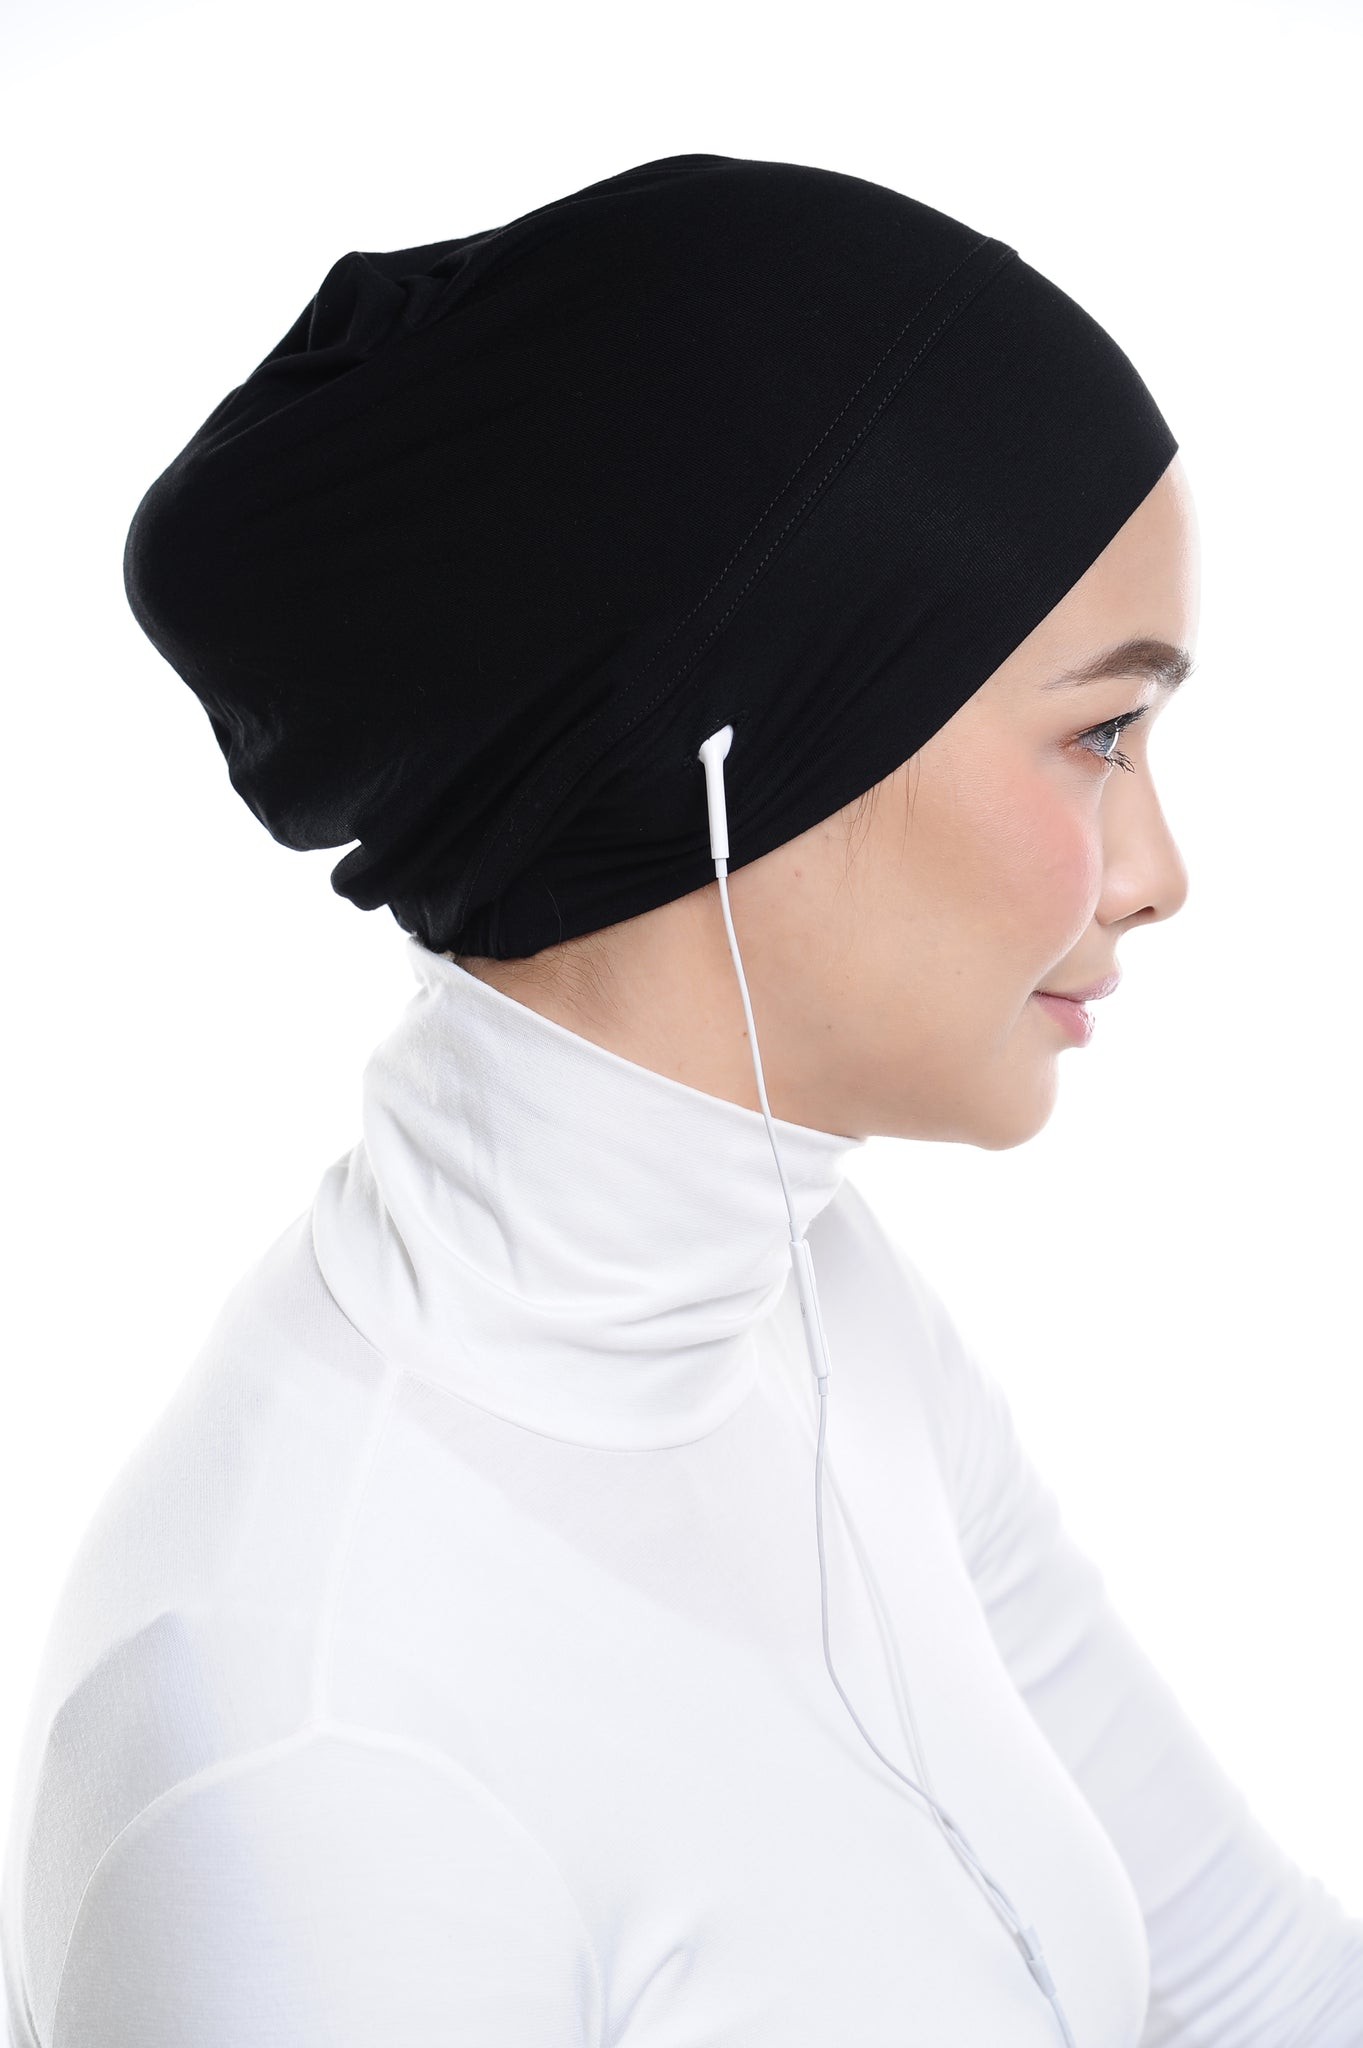 Snow Cap in Classic Black with ear loop